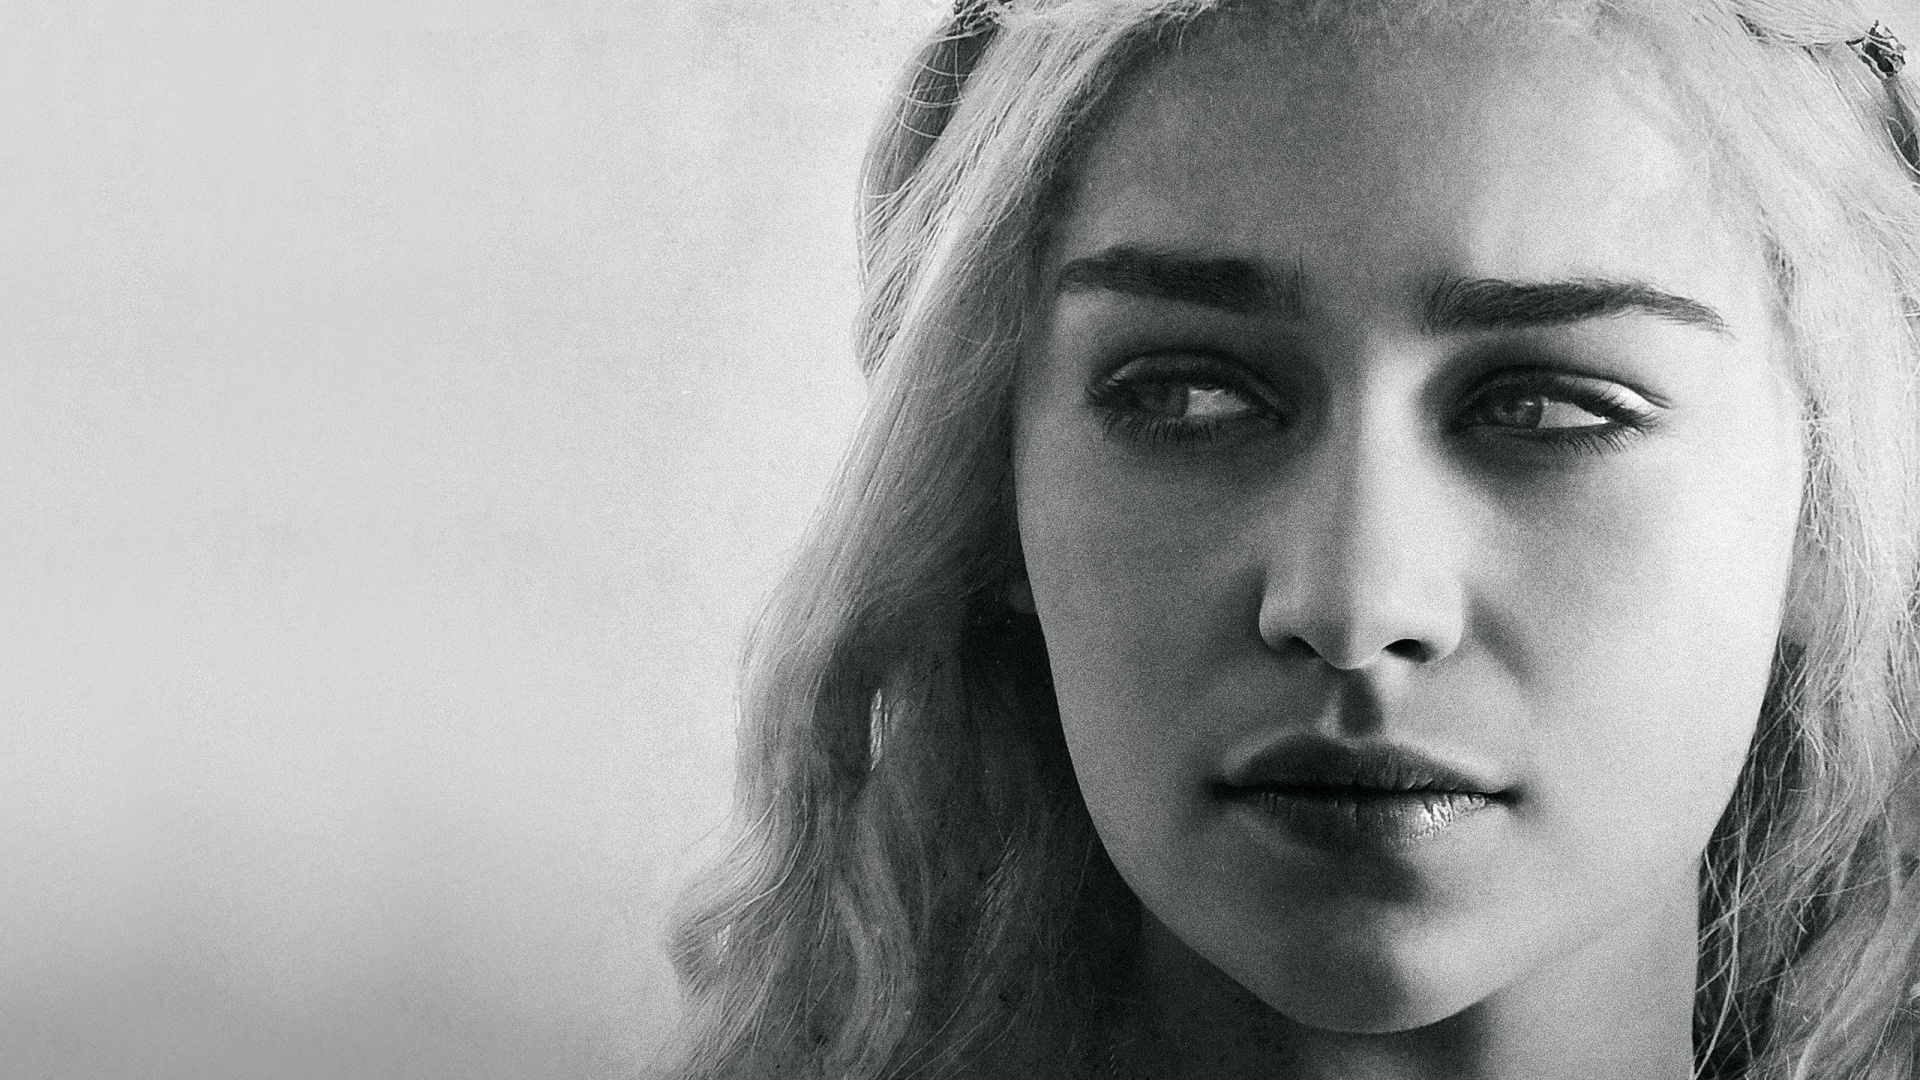 emilia clarke wallpapers hd A8